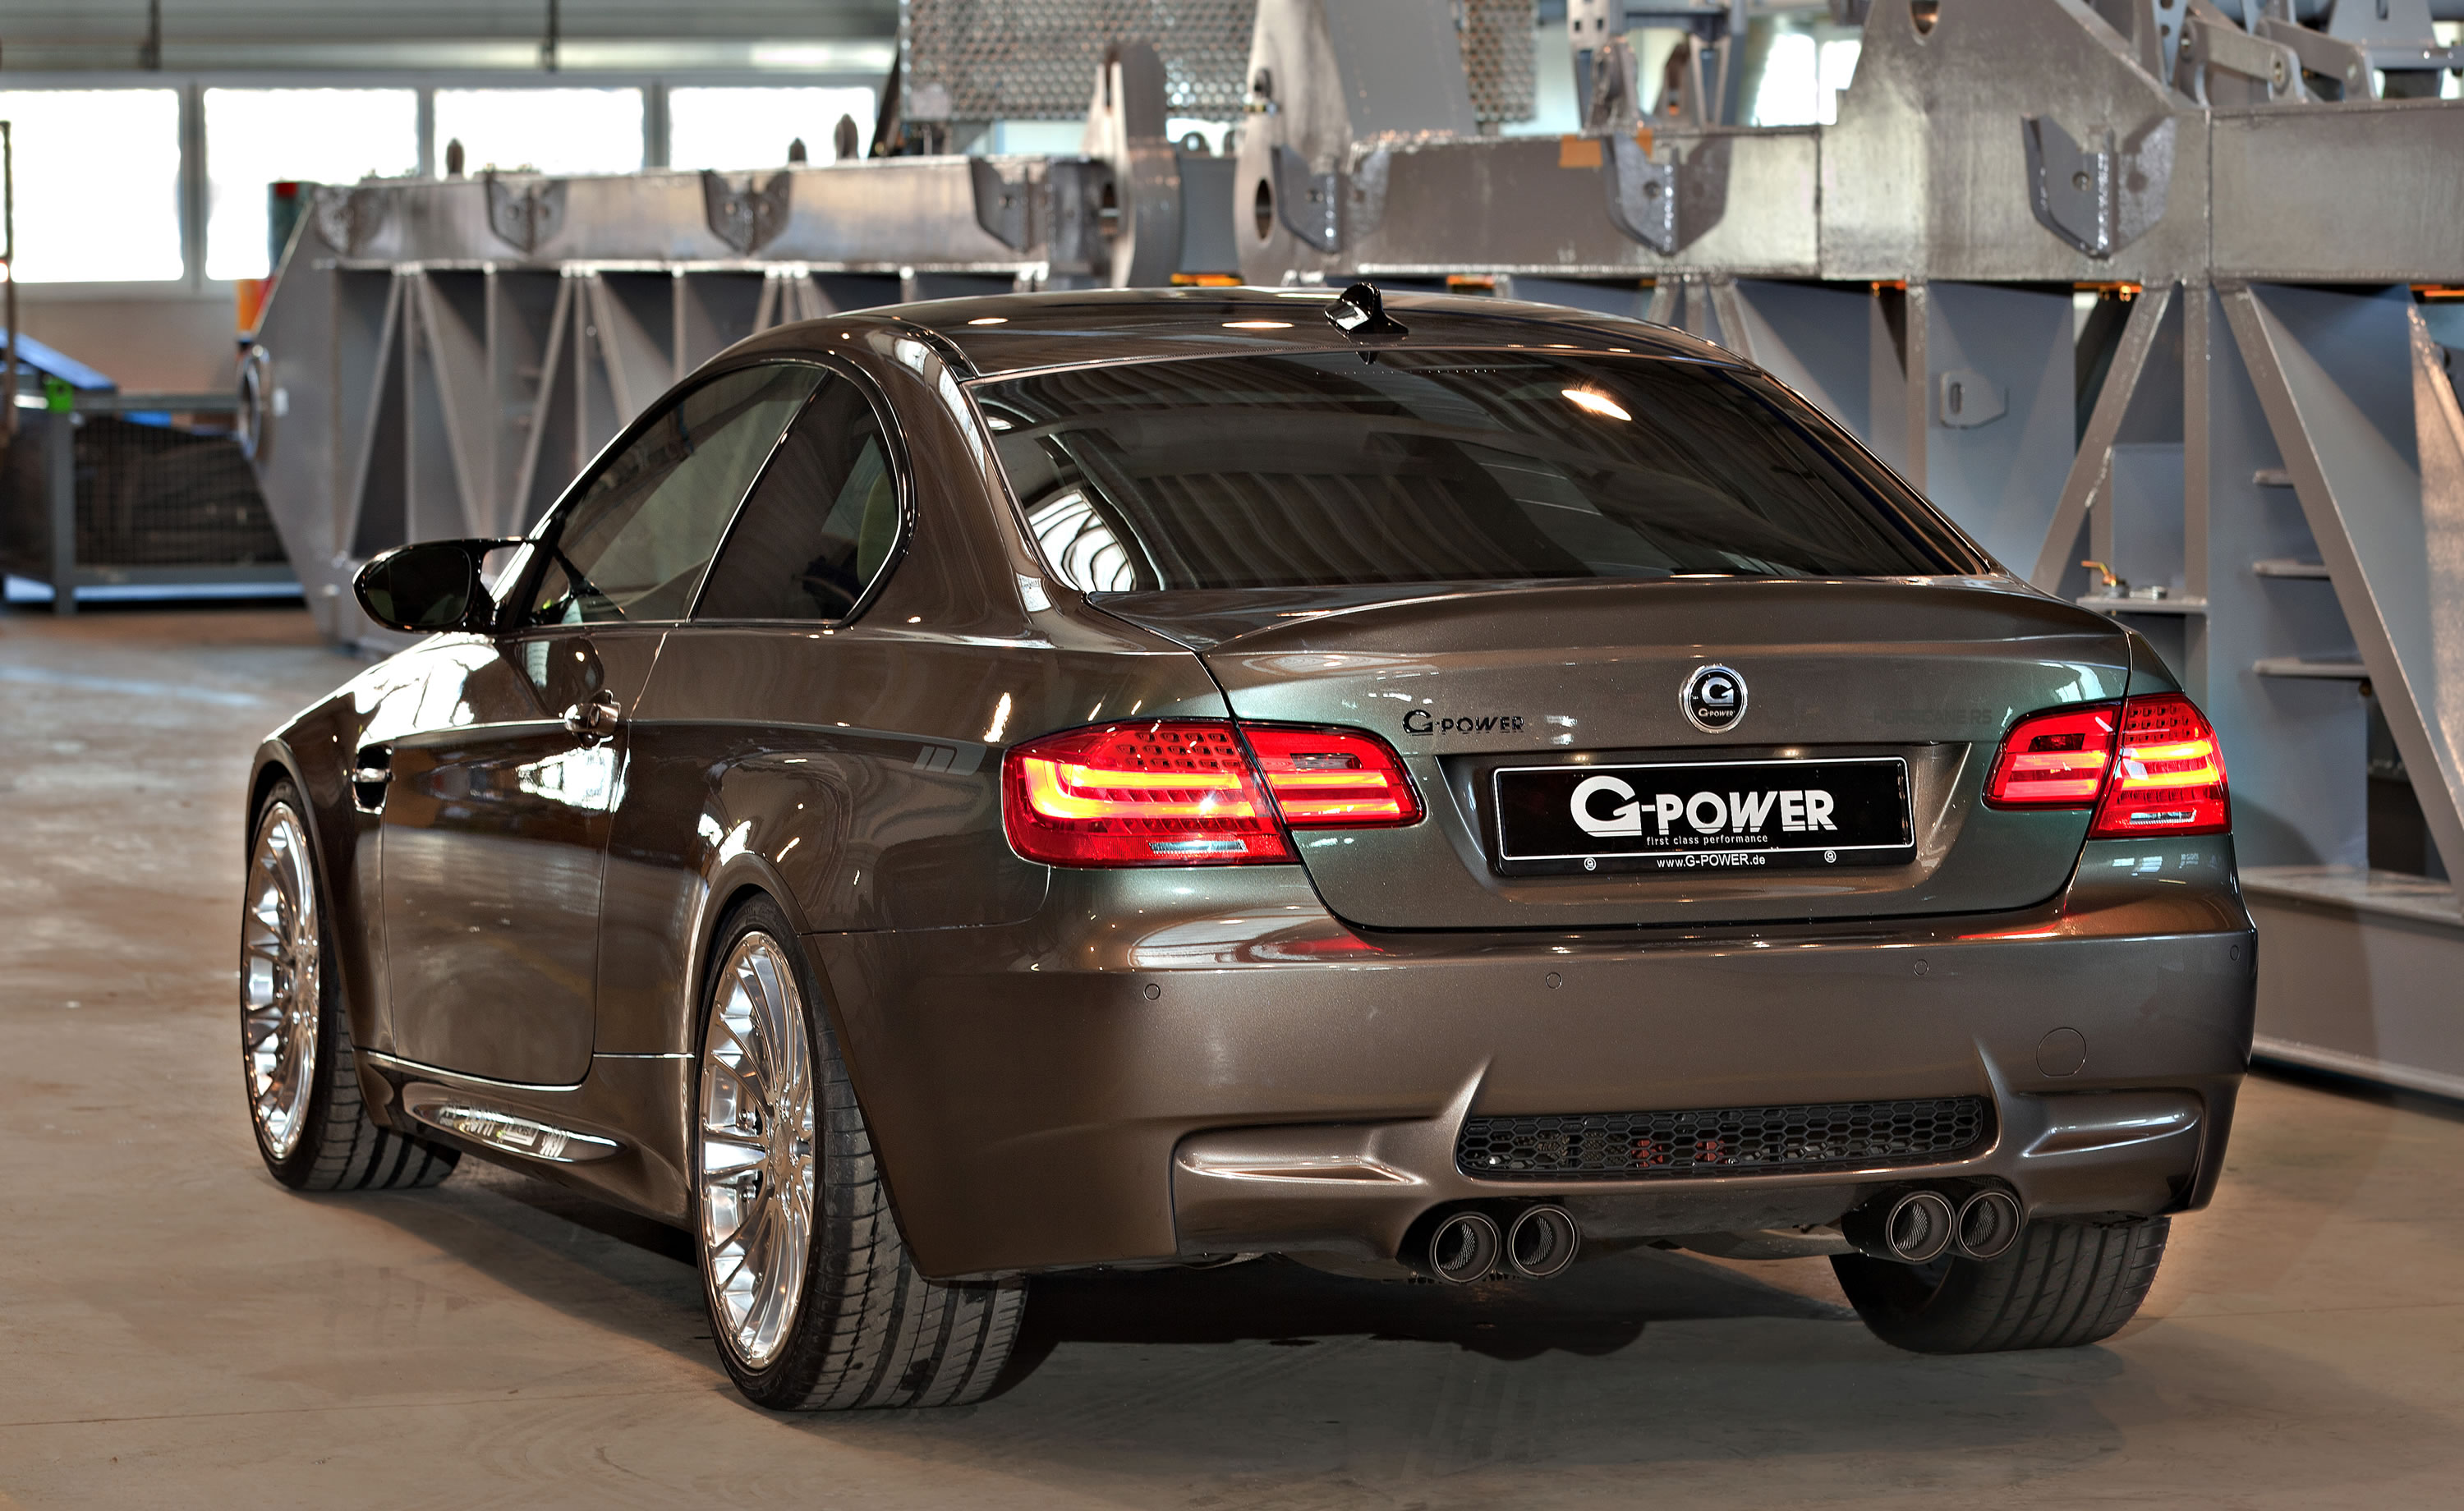 2013 bmw m3 hurricane rs by g power photos specs and review rs. Black Bedroom Furniture Sets. Home Design Ideas